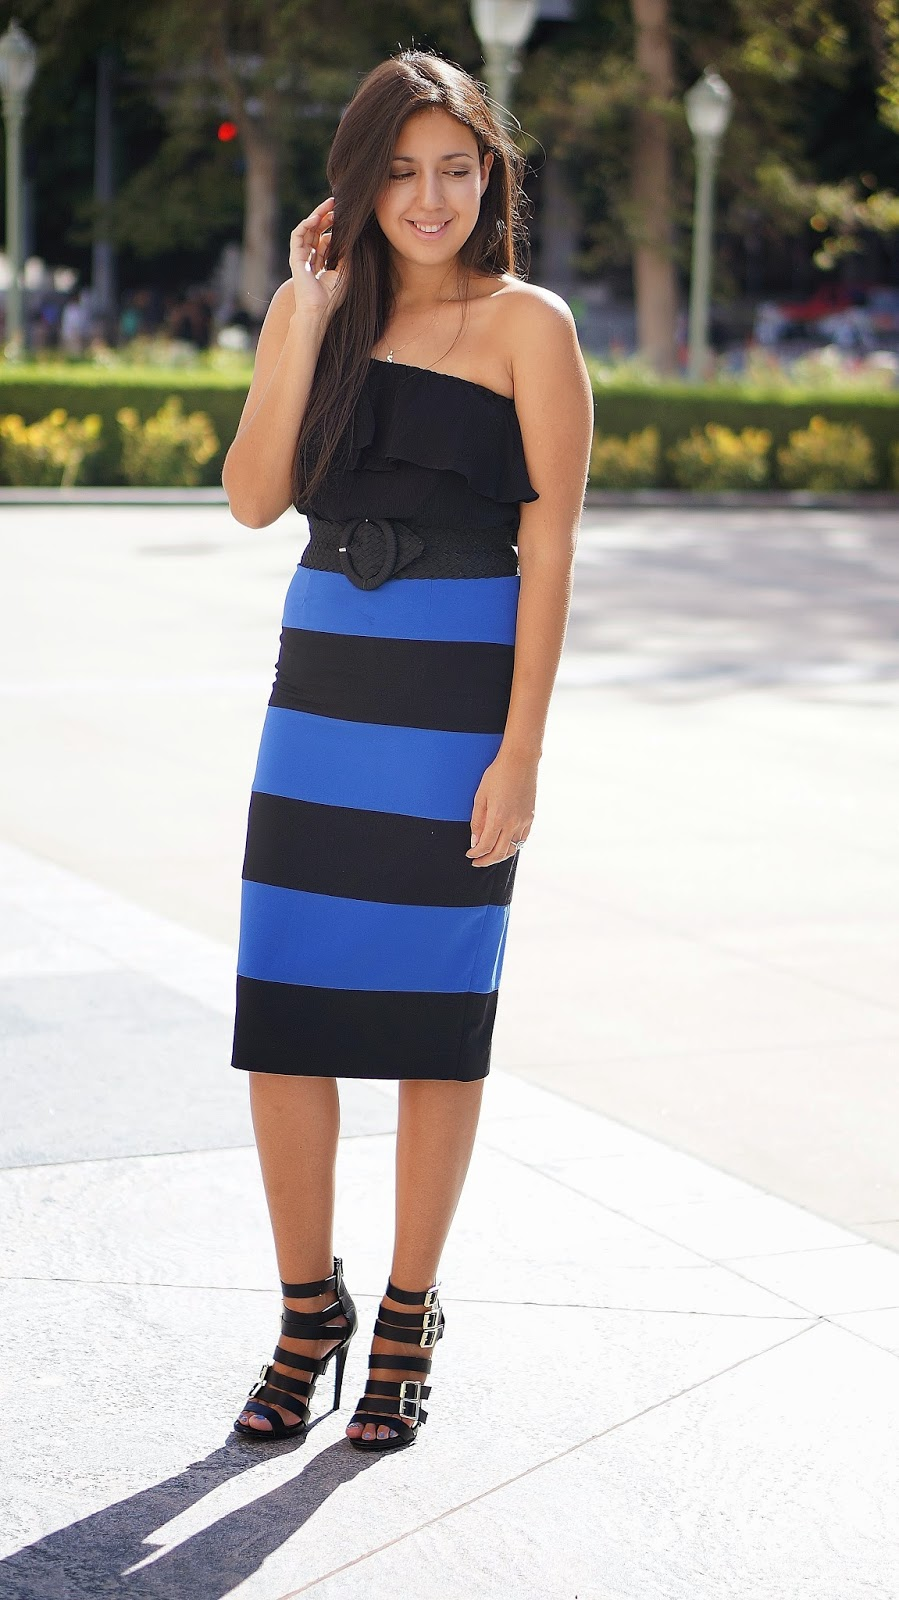 http://www.truehonestfashion.com/2014/07/striped-skirt.html